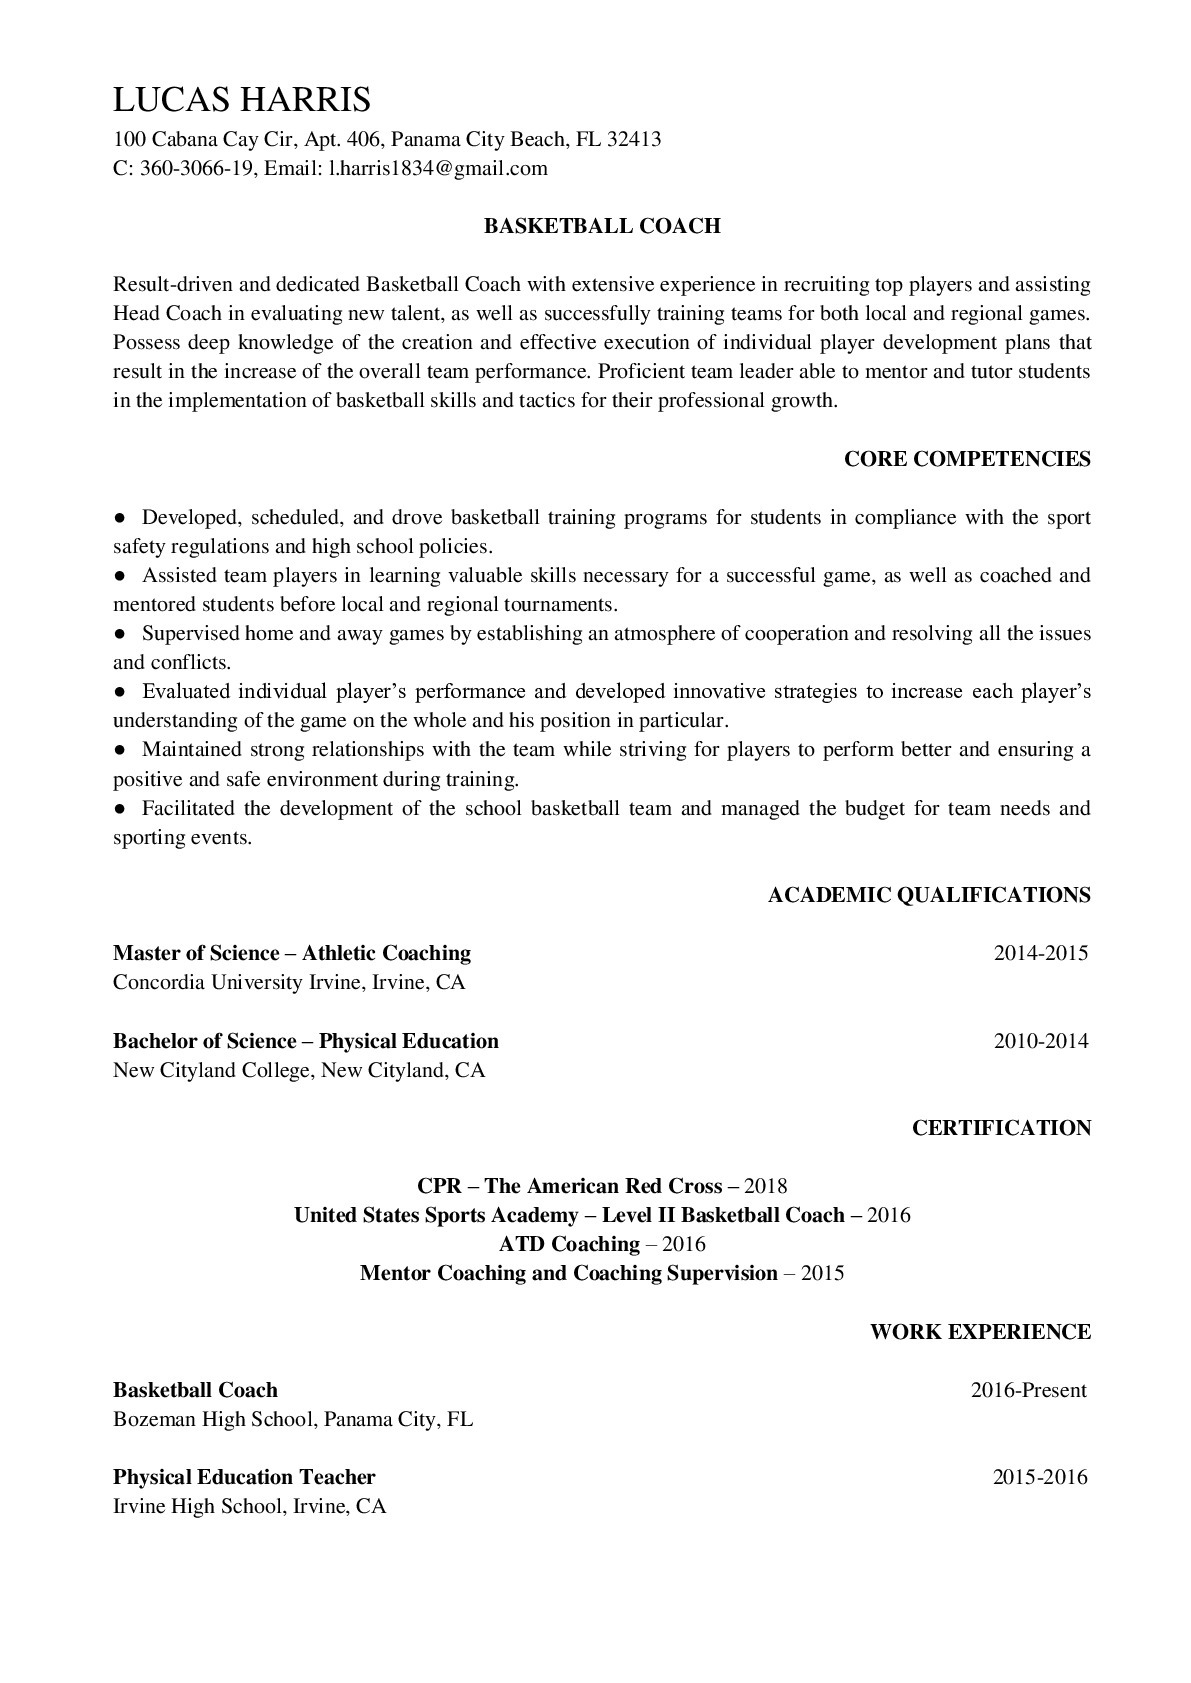 Resume Example for Basketball Coach